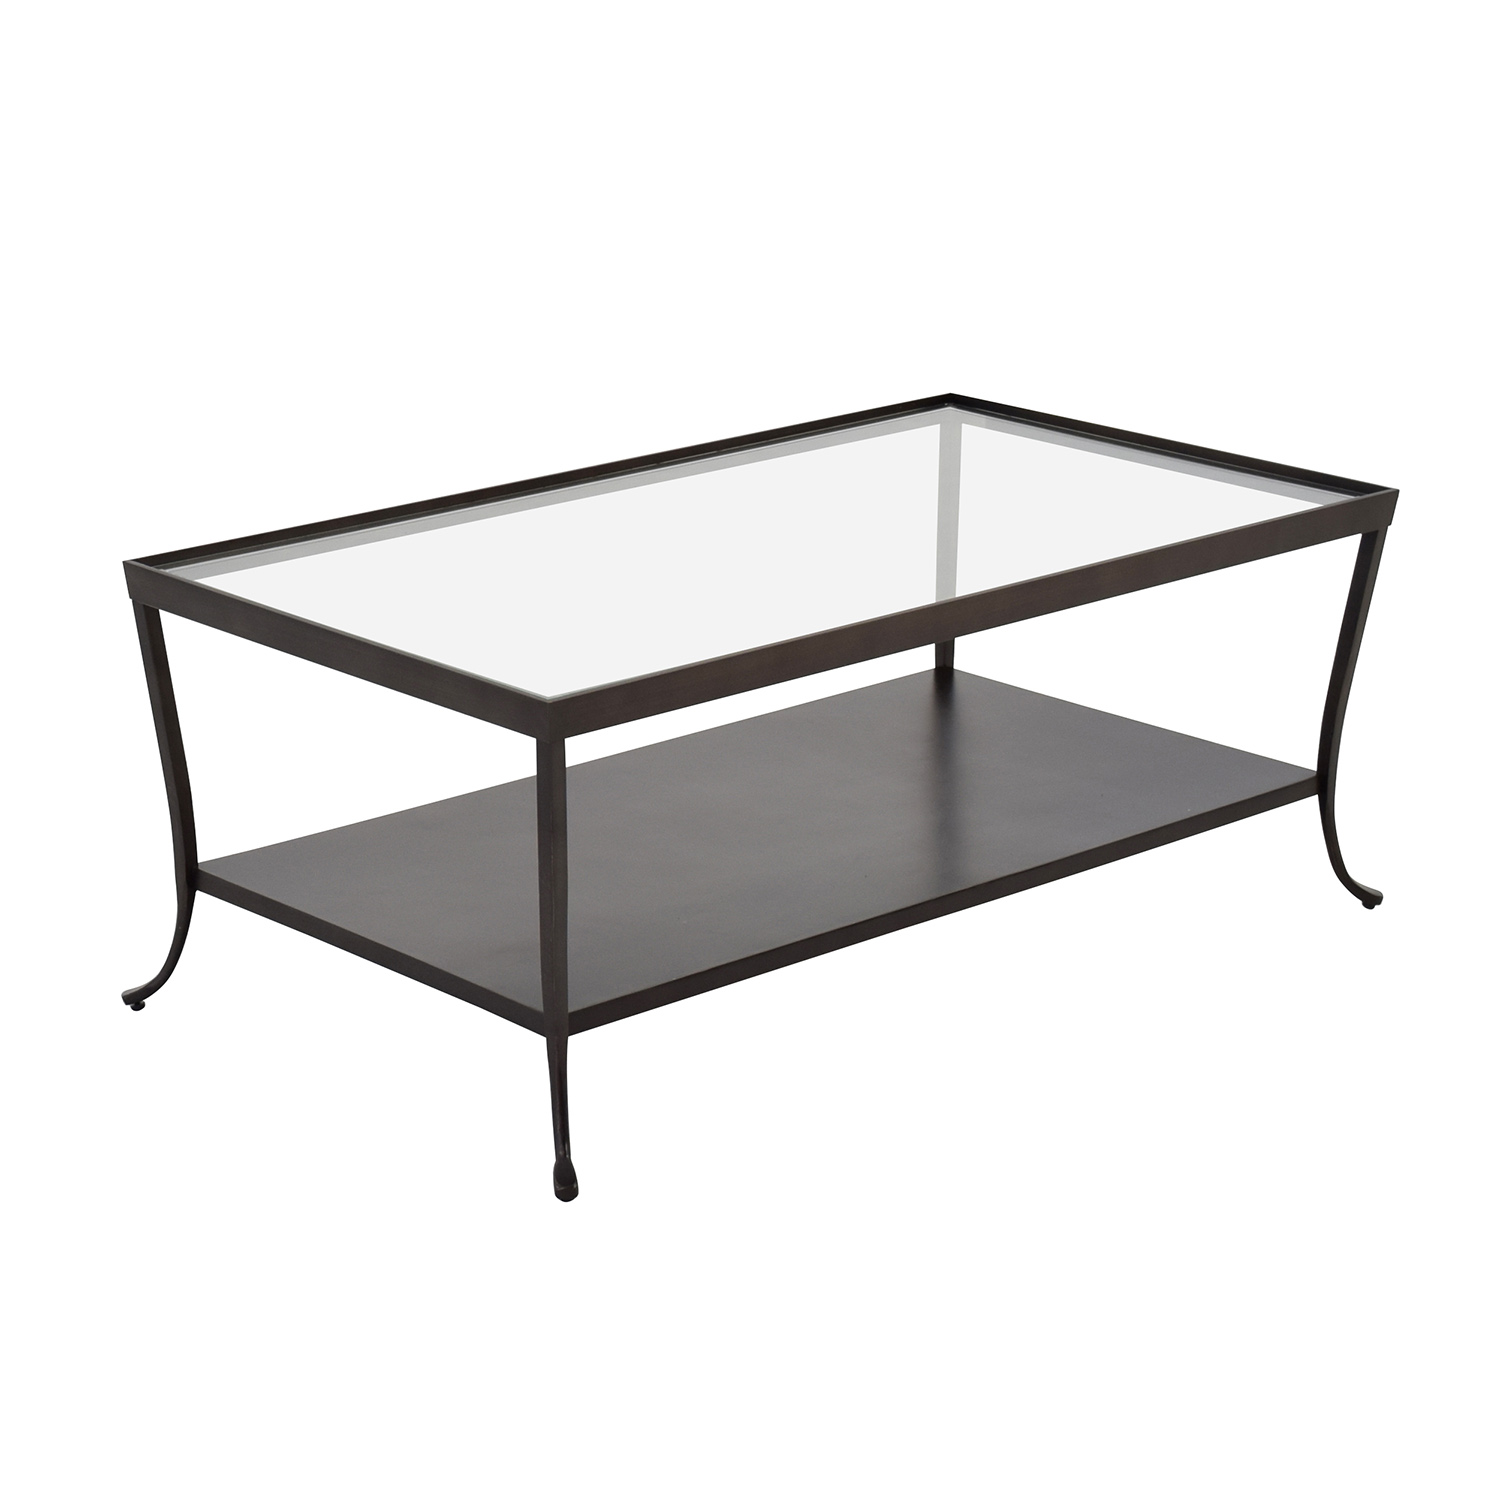 84 off metal base with glass top coffee table tables Metal table base